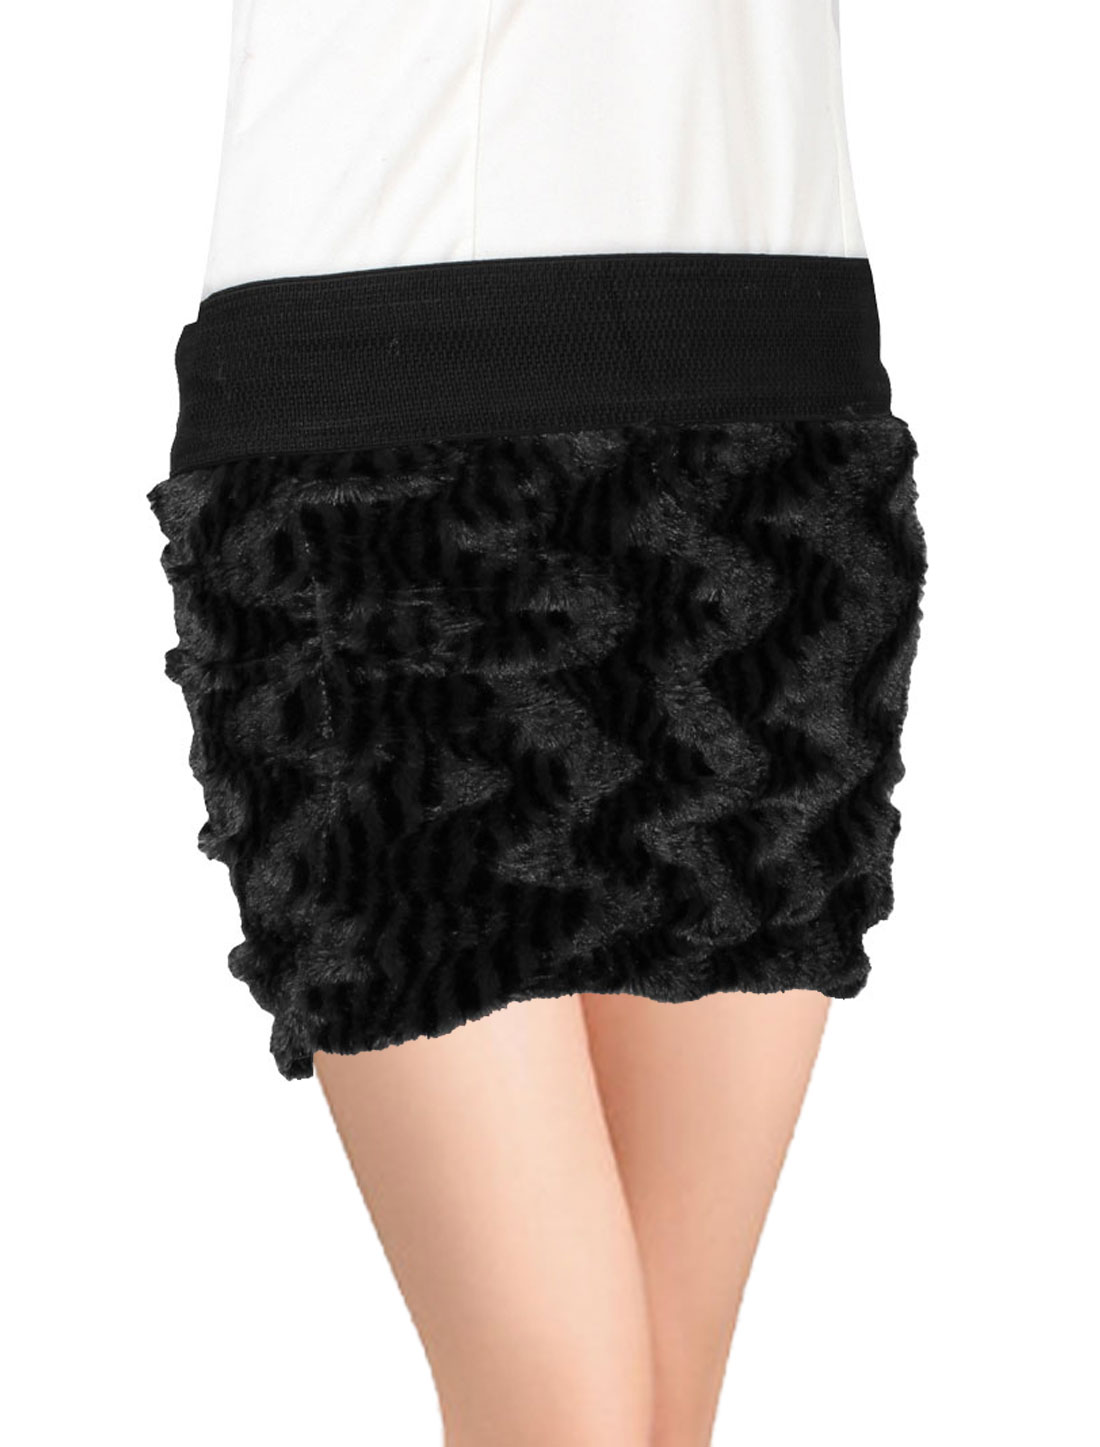 Ladies Black Elastic Waist Casual Autumn Mini Skirt XS